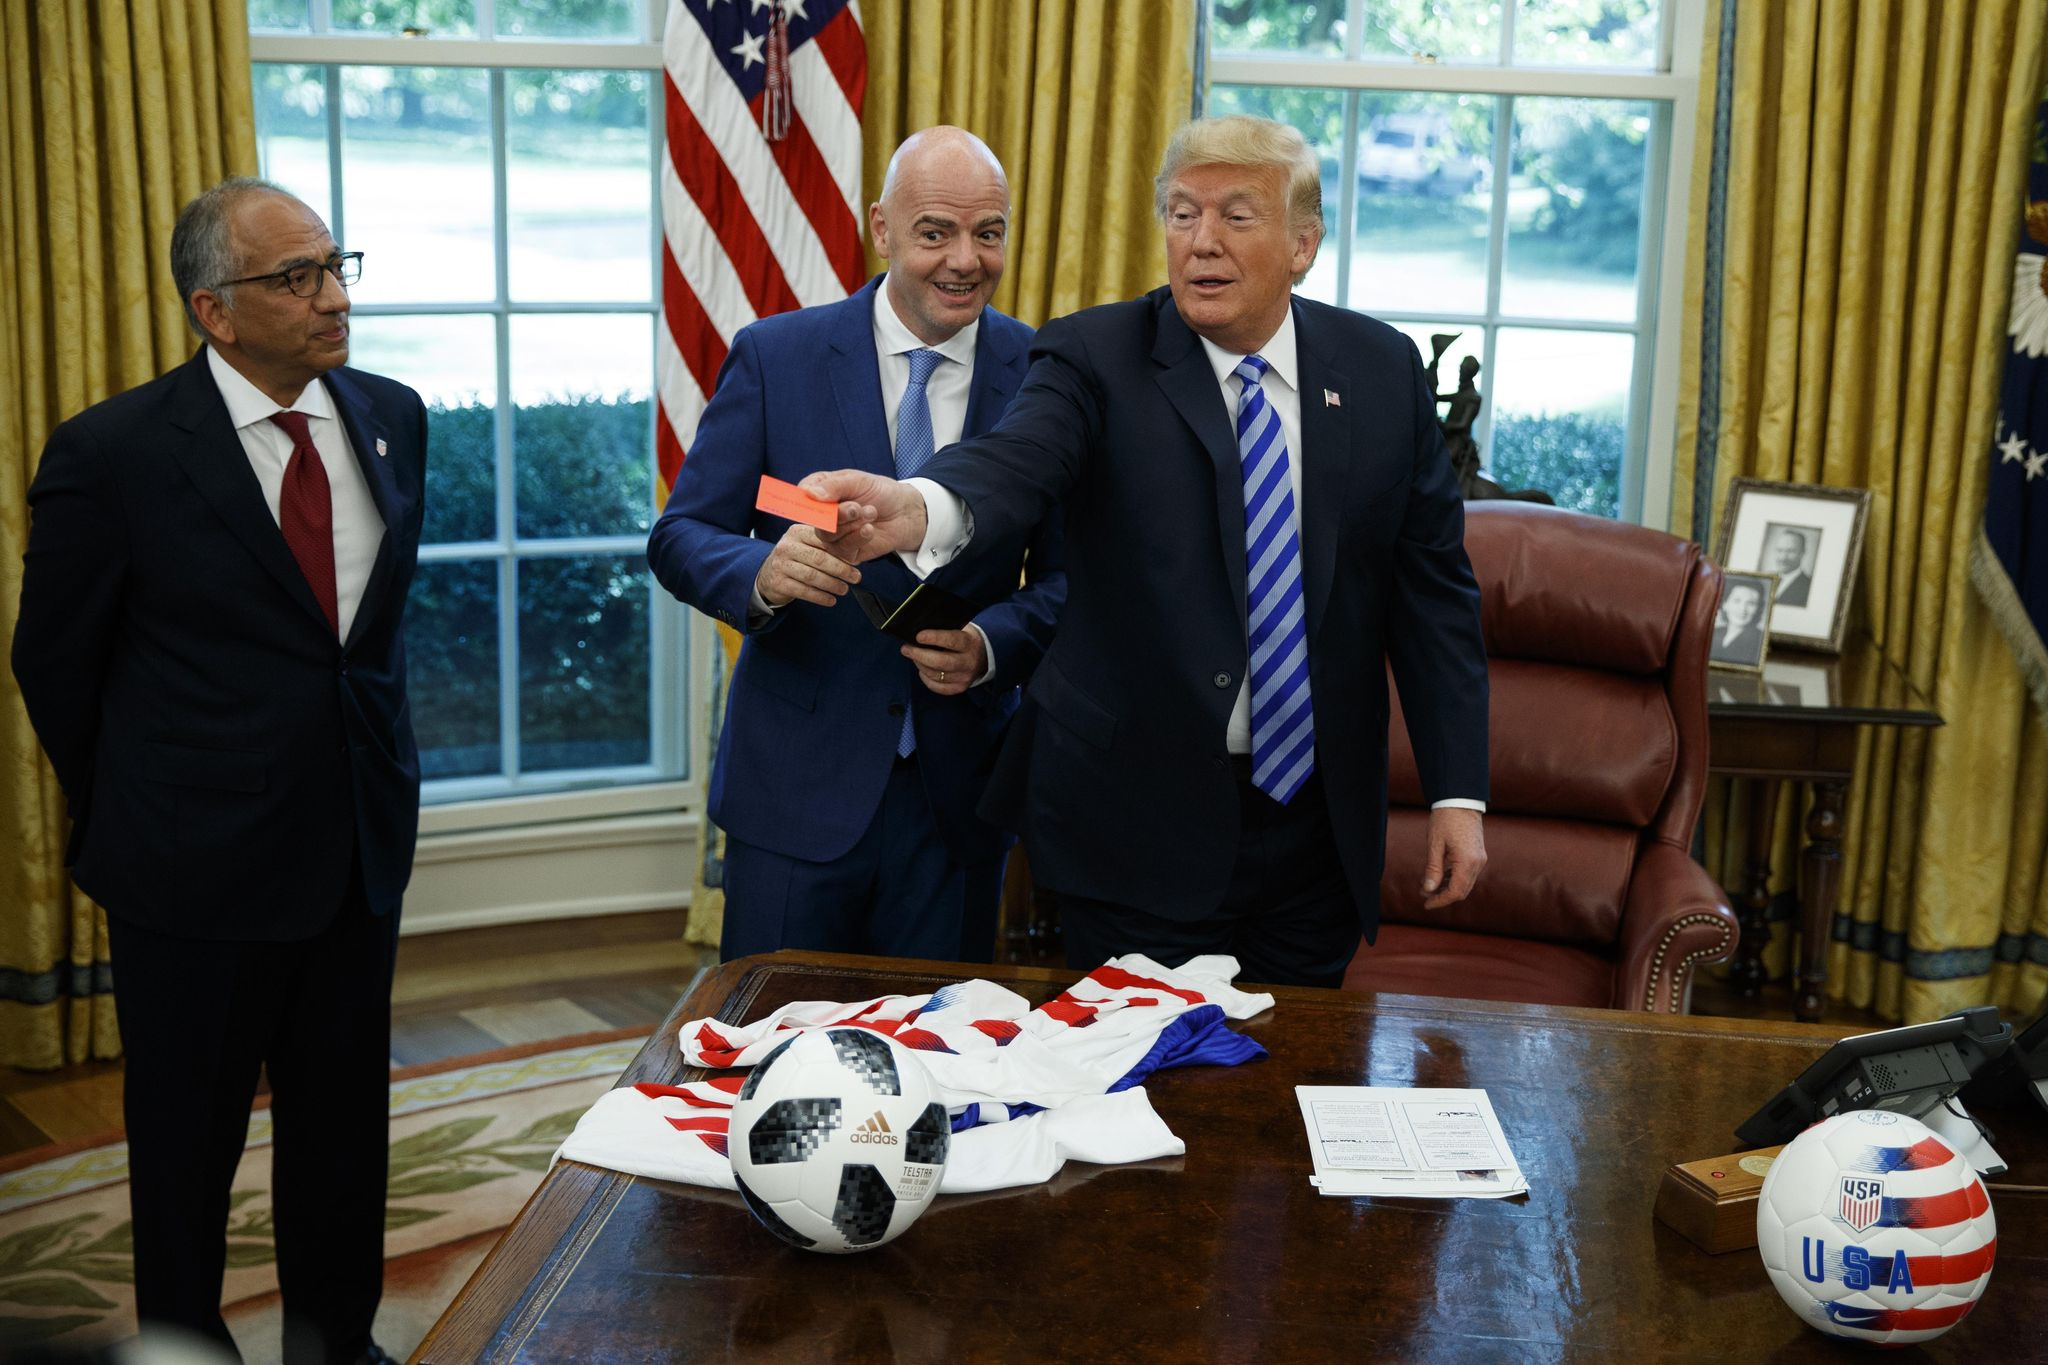 Trump meets with FIFA president to talk World Cup